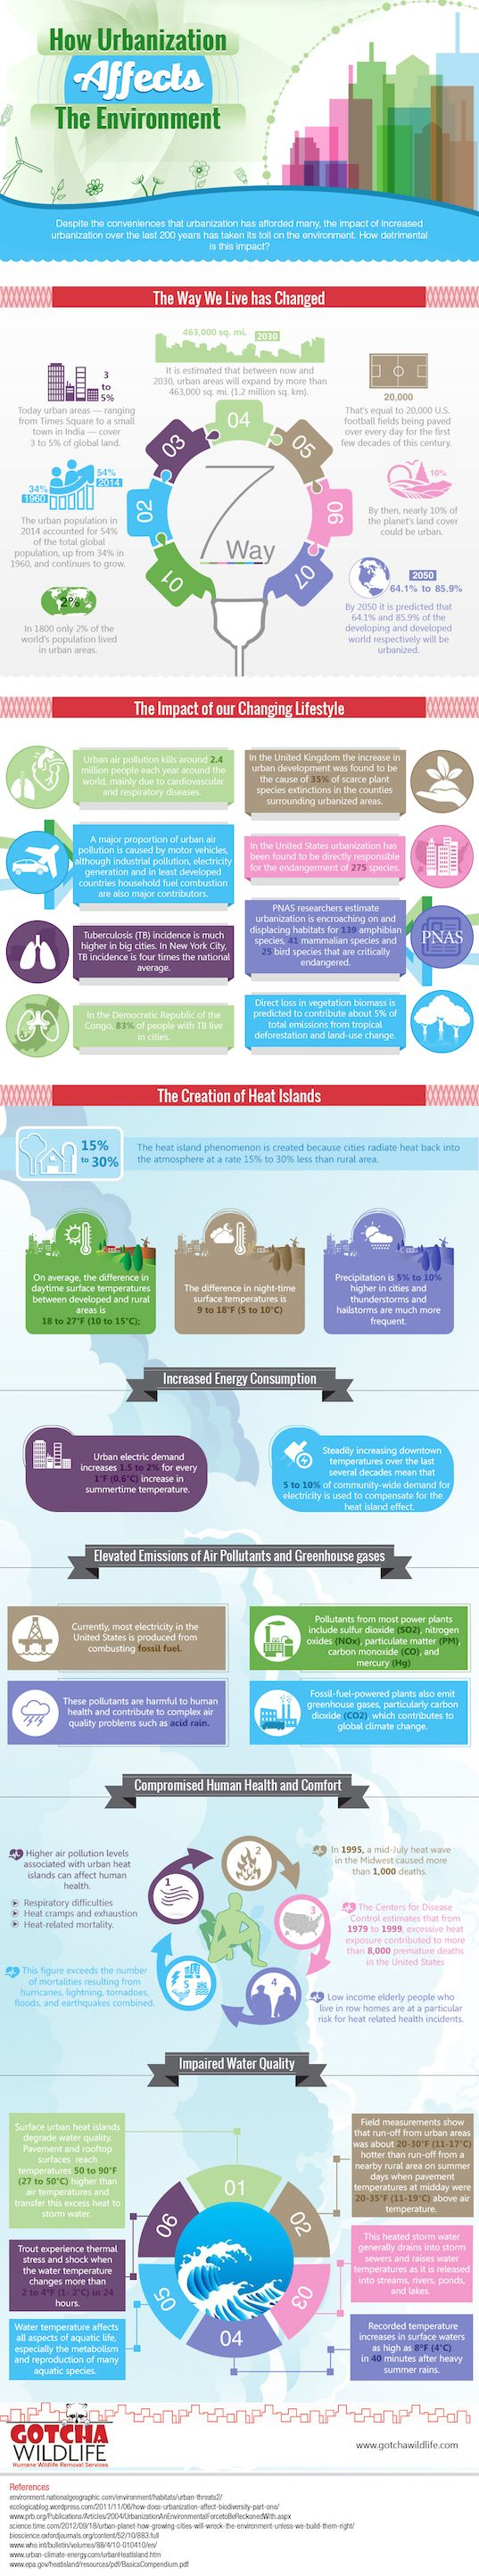 infographic, reader submitted content, Gotcha Wildlife, urbanization, urbanization impact on the environment, heat island effect